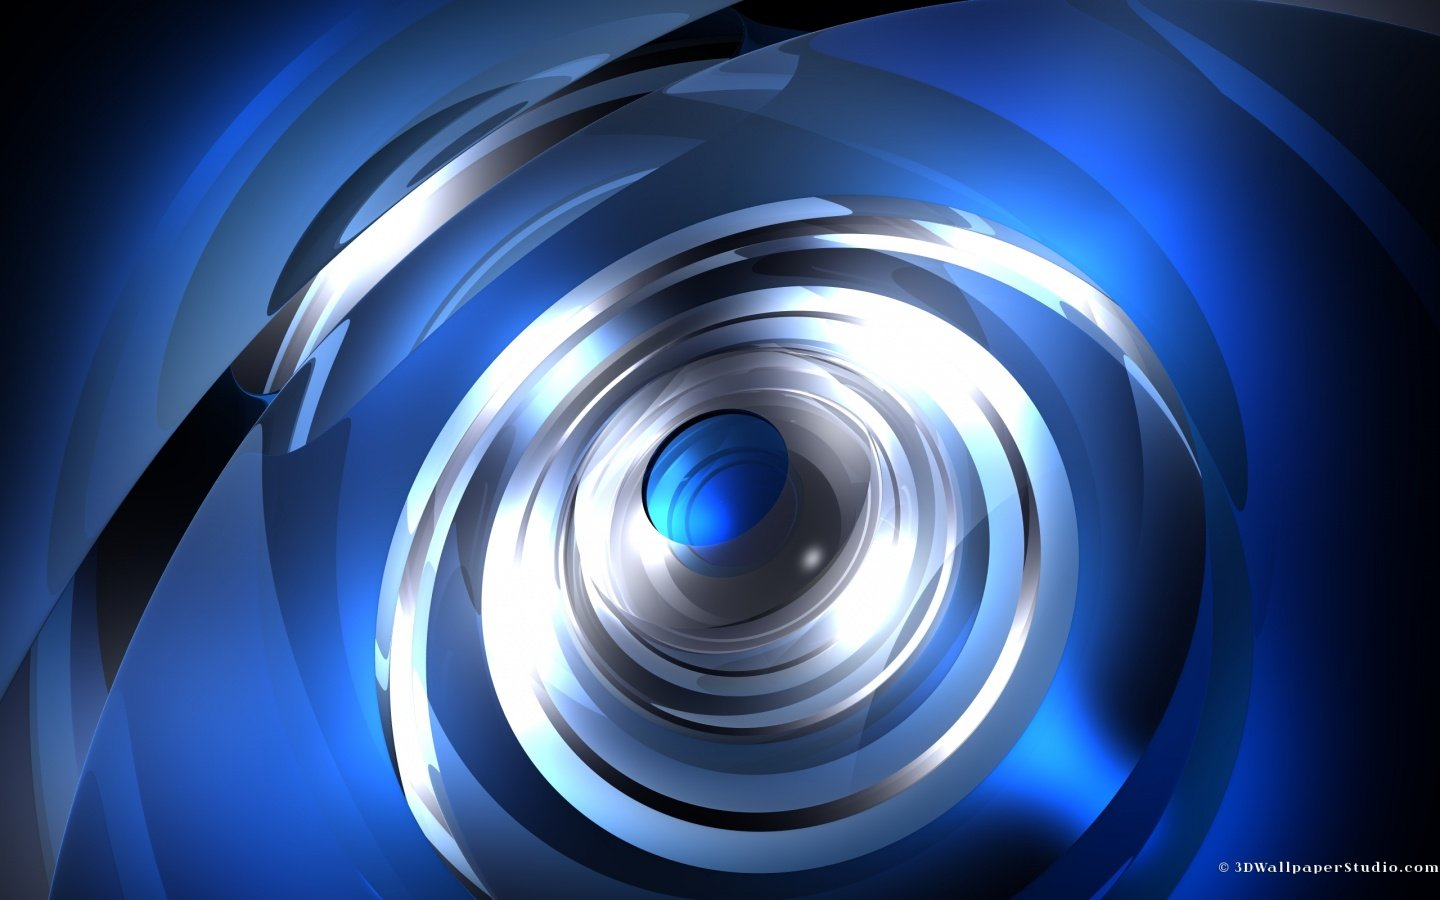 3D Wallpaper Moving blue 3d abstract 1440 x 900 1440x900